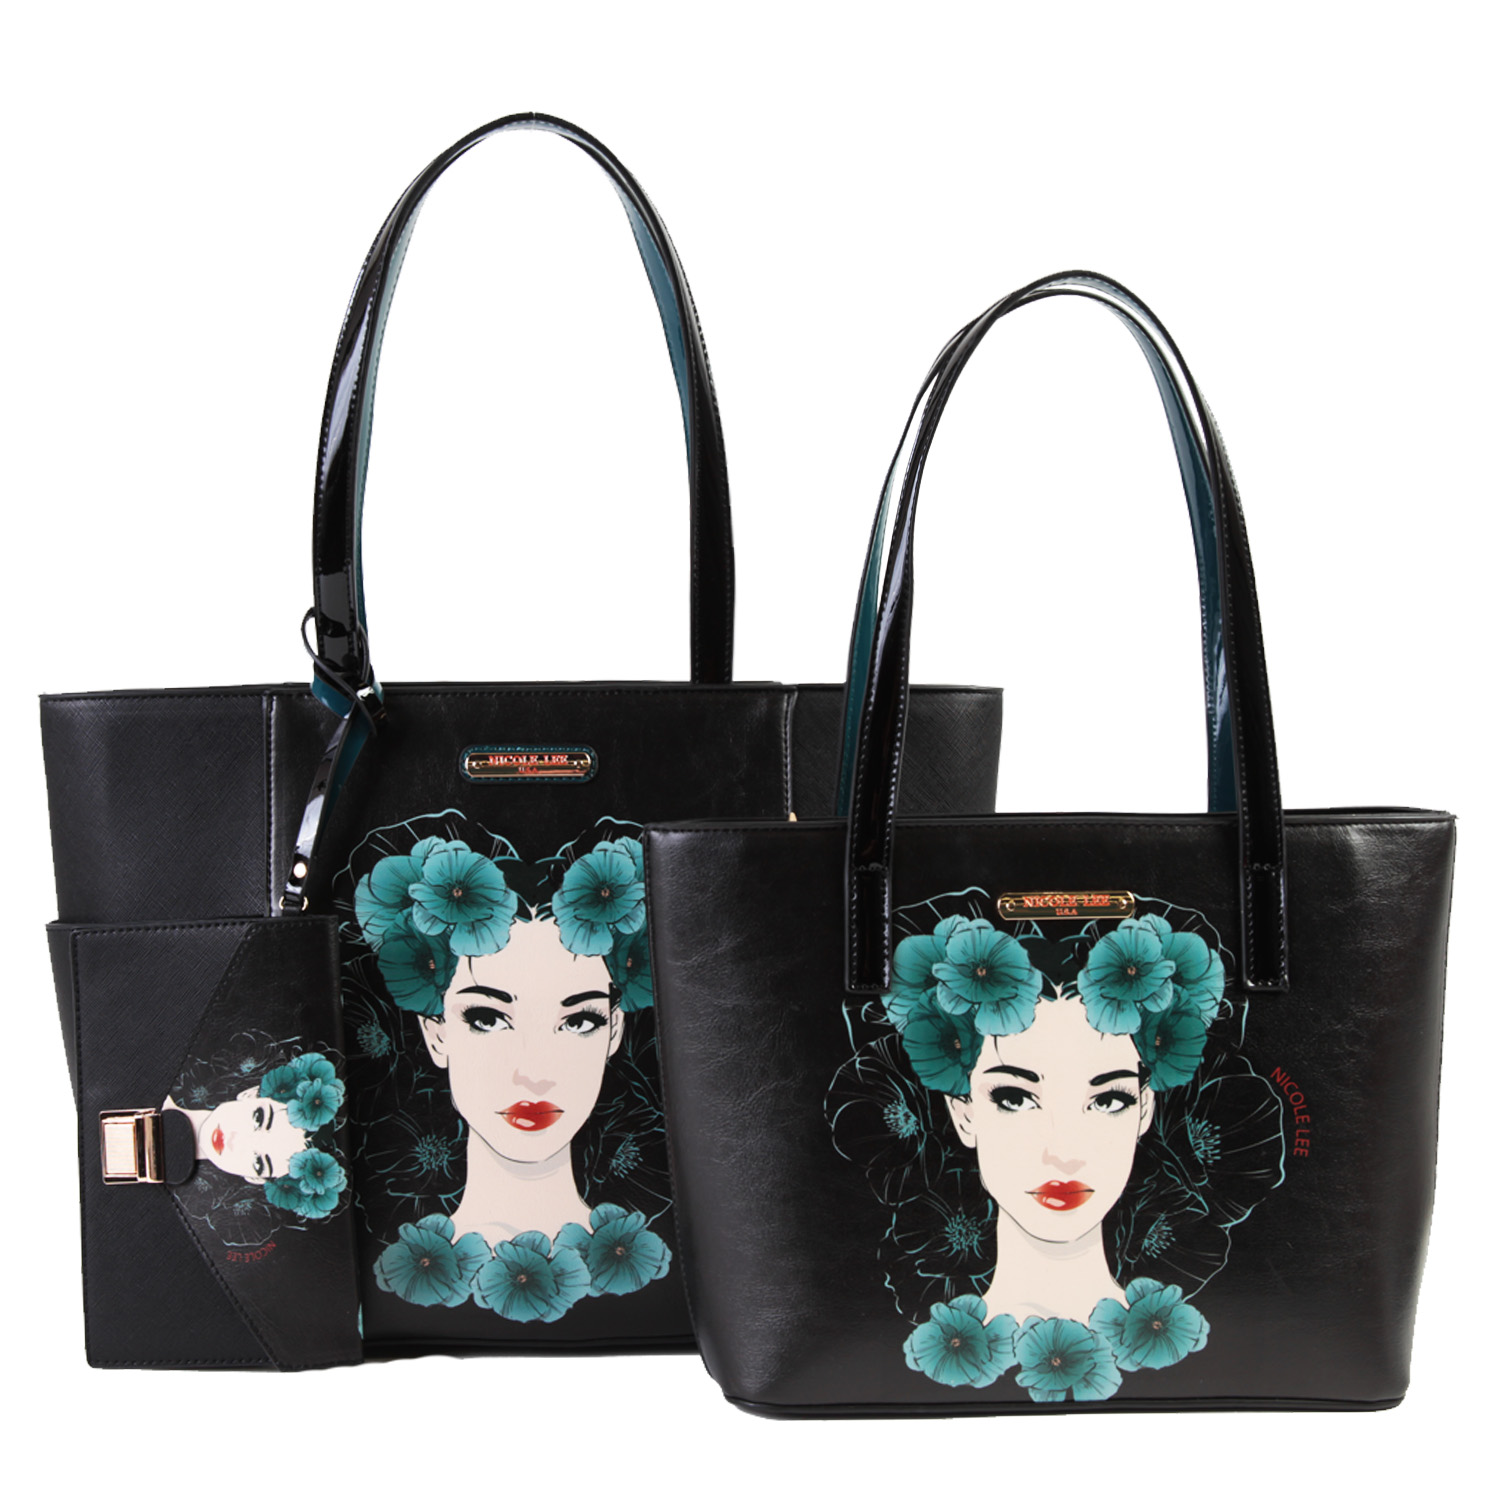 NICOLE LEE 3 in 1 Shopper Bag SES